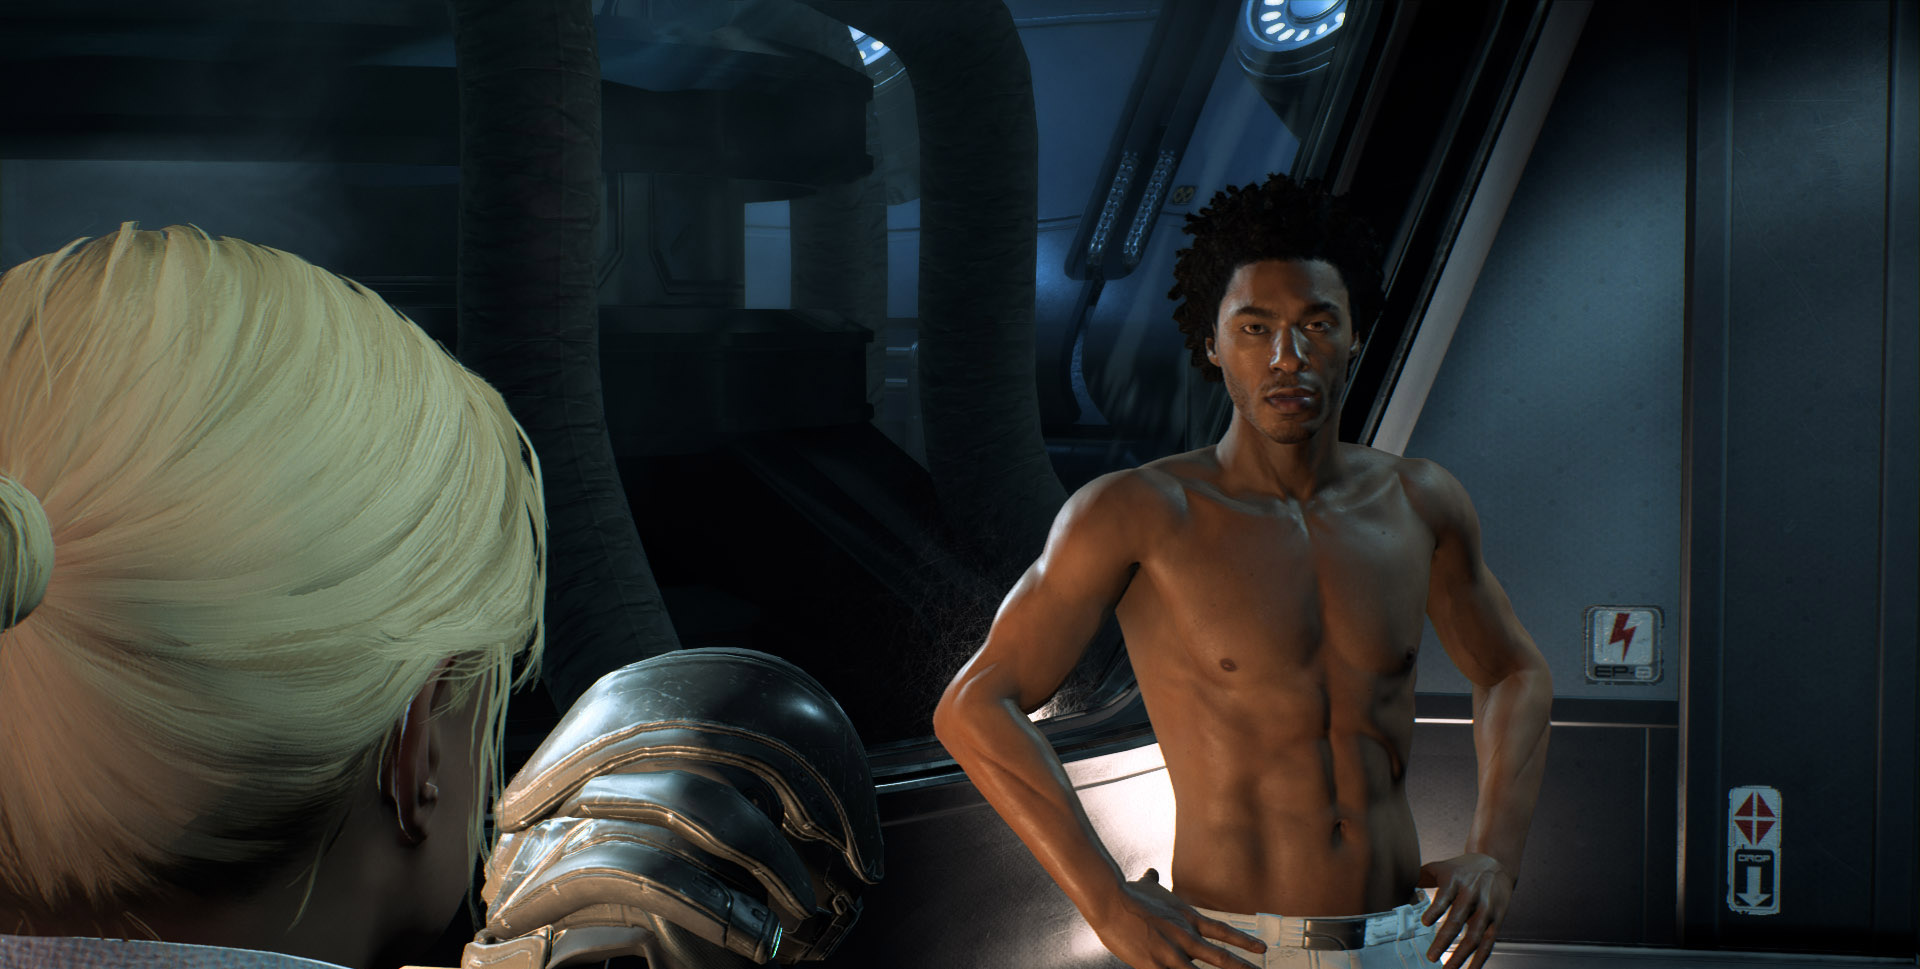 Romancing Liam Kosta in Mass Effect: Andromeda is simple but requires a few steps, including completing his Loyalty mission.